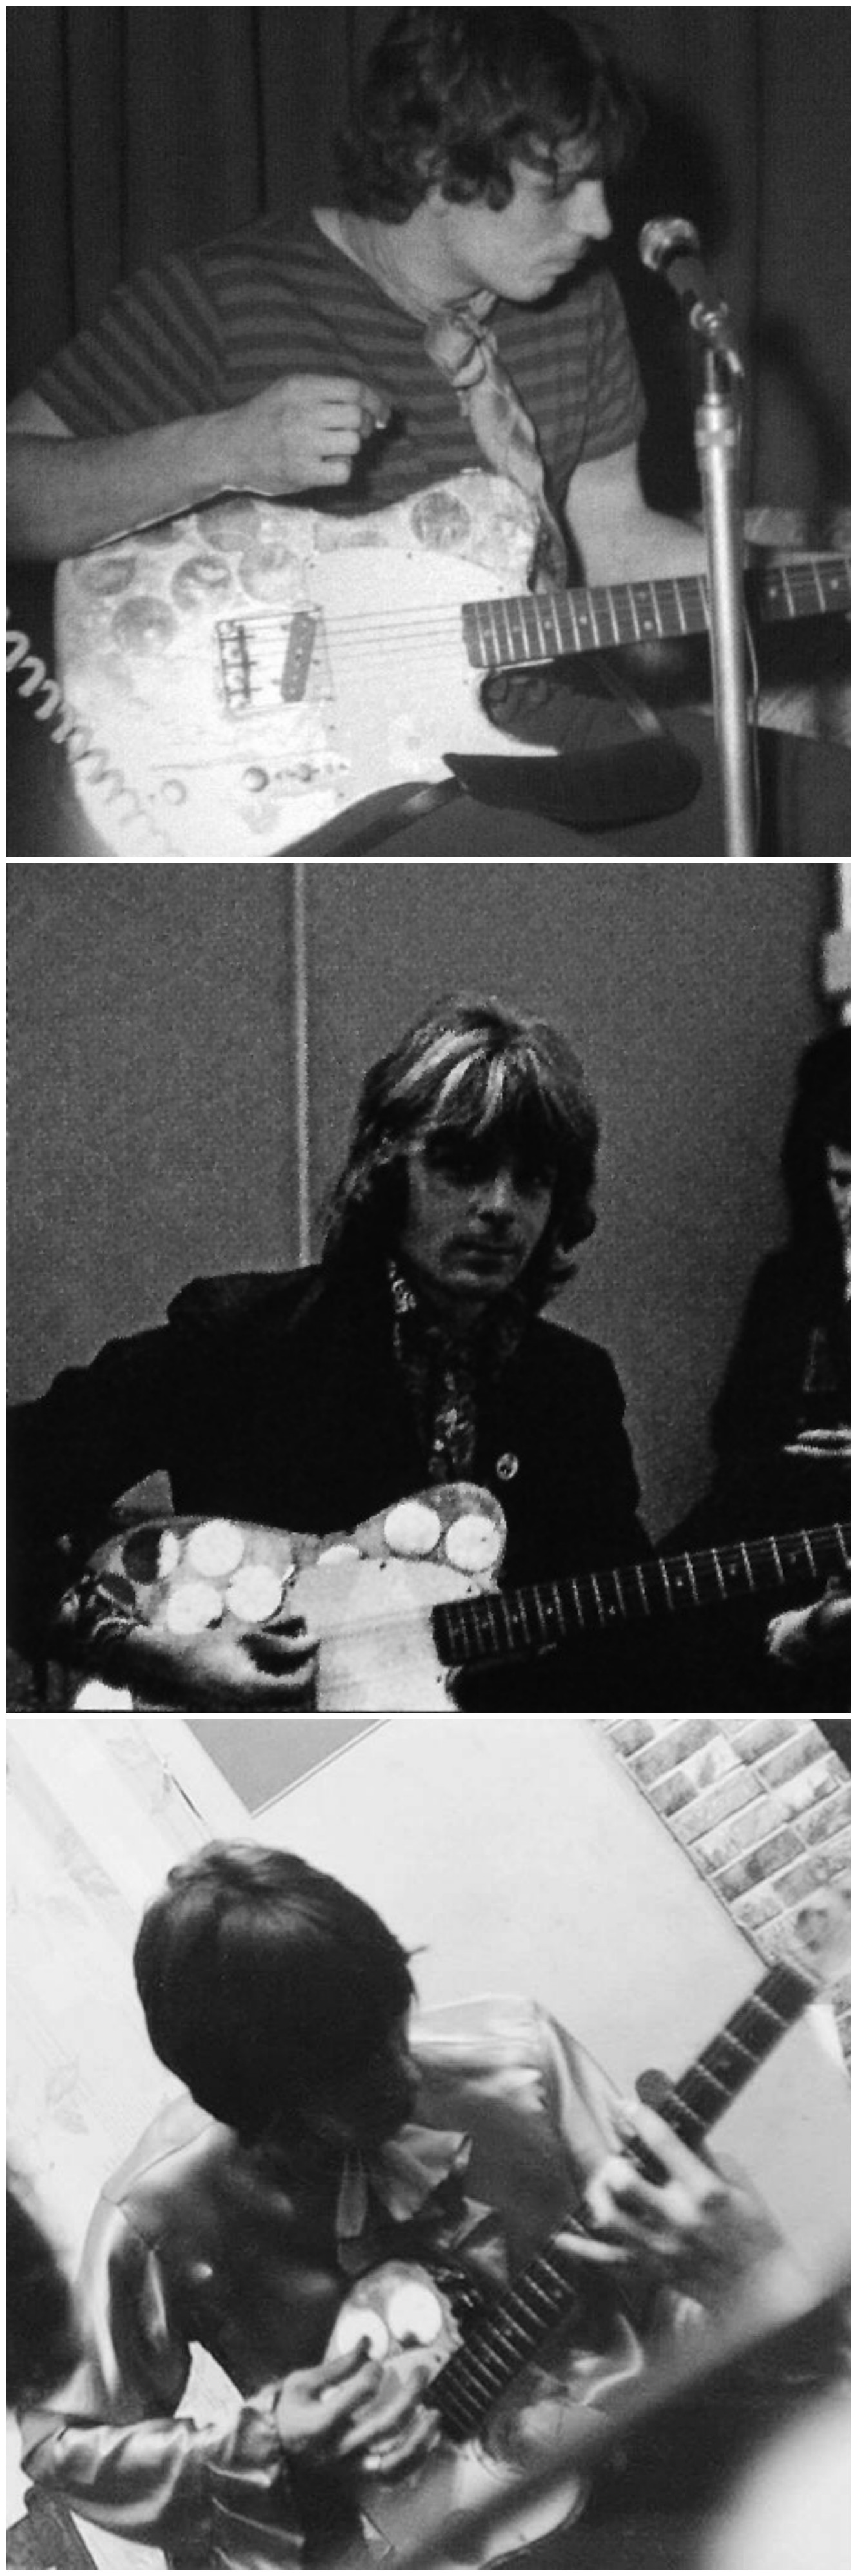 Rick Wright and Roger Waters playing Syd Barrett's mirrored Fender Esquire.